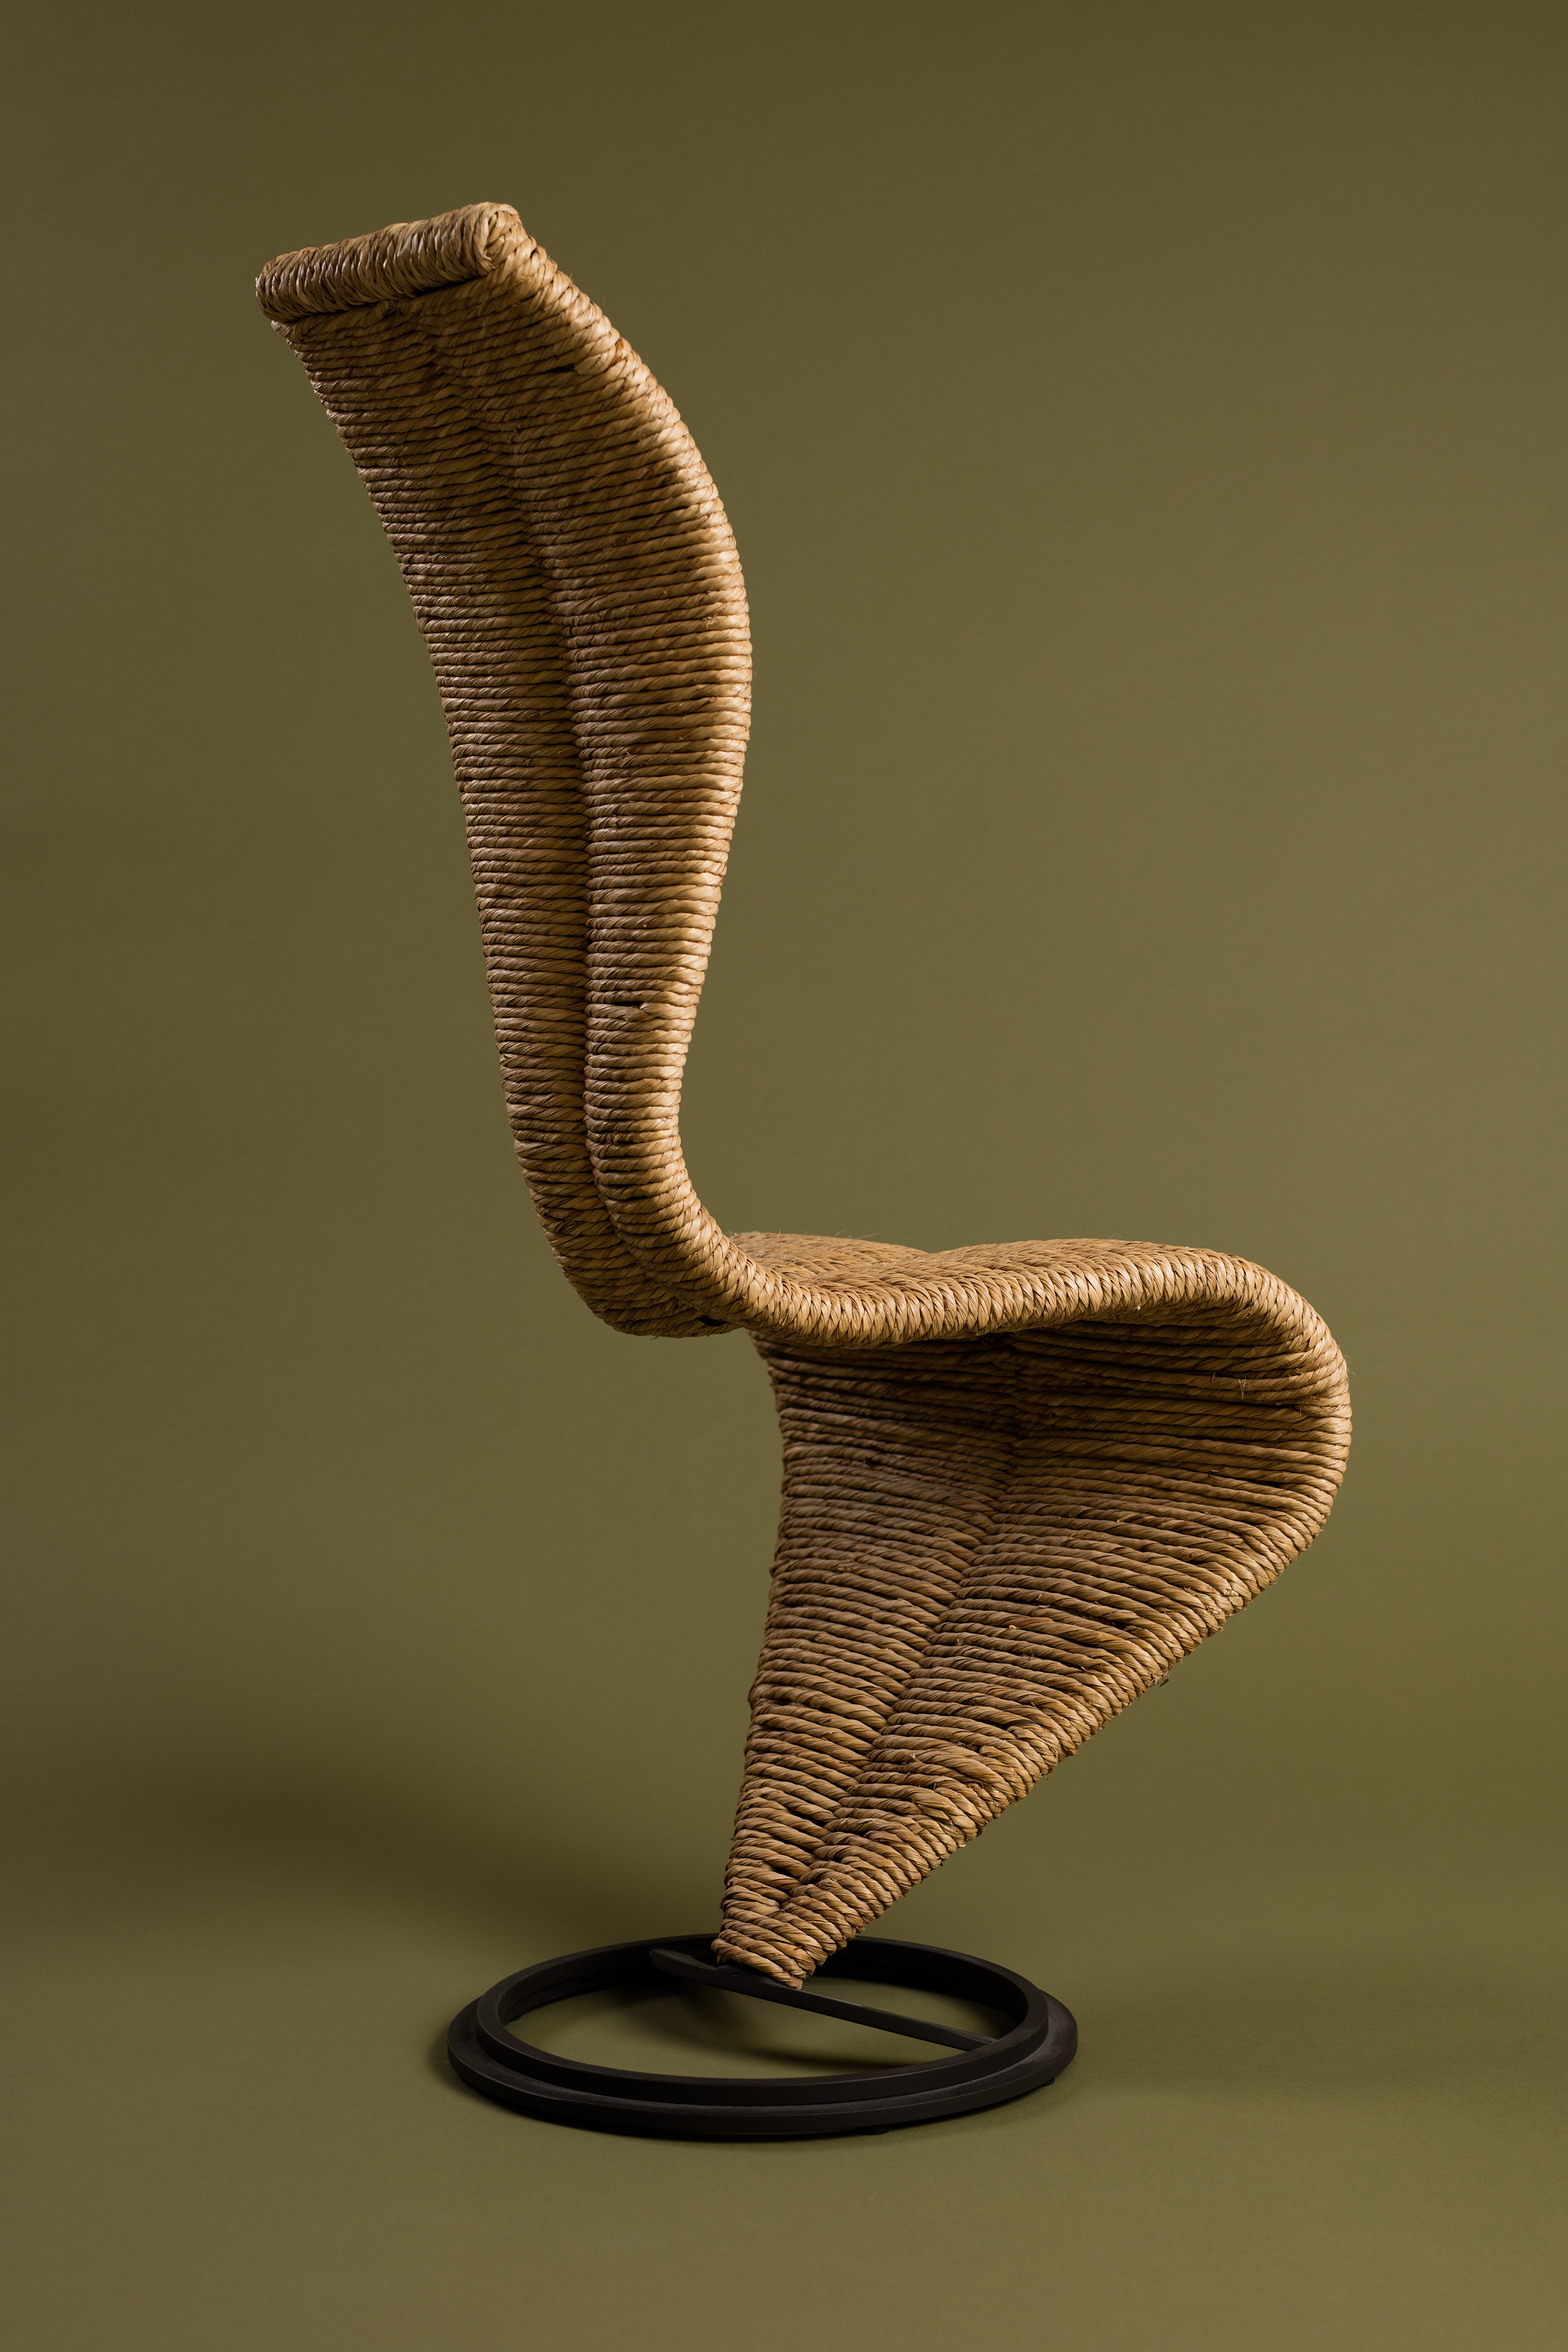 Braided & Laced - 27 Sep - 16 Dec 2018This themed exhibition at Museum of Furniture Studies shows how braiding and lacing techniques, have been used in furniture design and production from the late 19th century up to the present day. Various items from the collection have been chosen to illustrate the technical theme – from simple coffee shop chairs to exclusive pieces of prestige furniture.A themed evening (later annonced) will bring together a group of experts – designers, craftsman, producers and researchers – to discuss the prospects for braiding and lacing techniques in the past, present and future. What is the future for handcrafted furnitures today in technical and financial terms? Is it possible for it still to be made in Sweden, or is it now permanently the domain of low-cost countries?